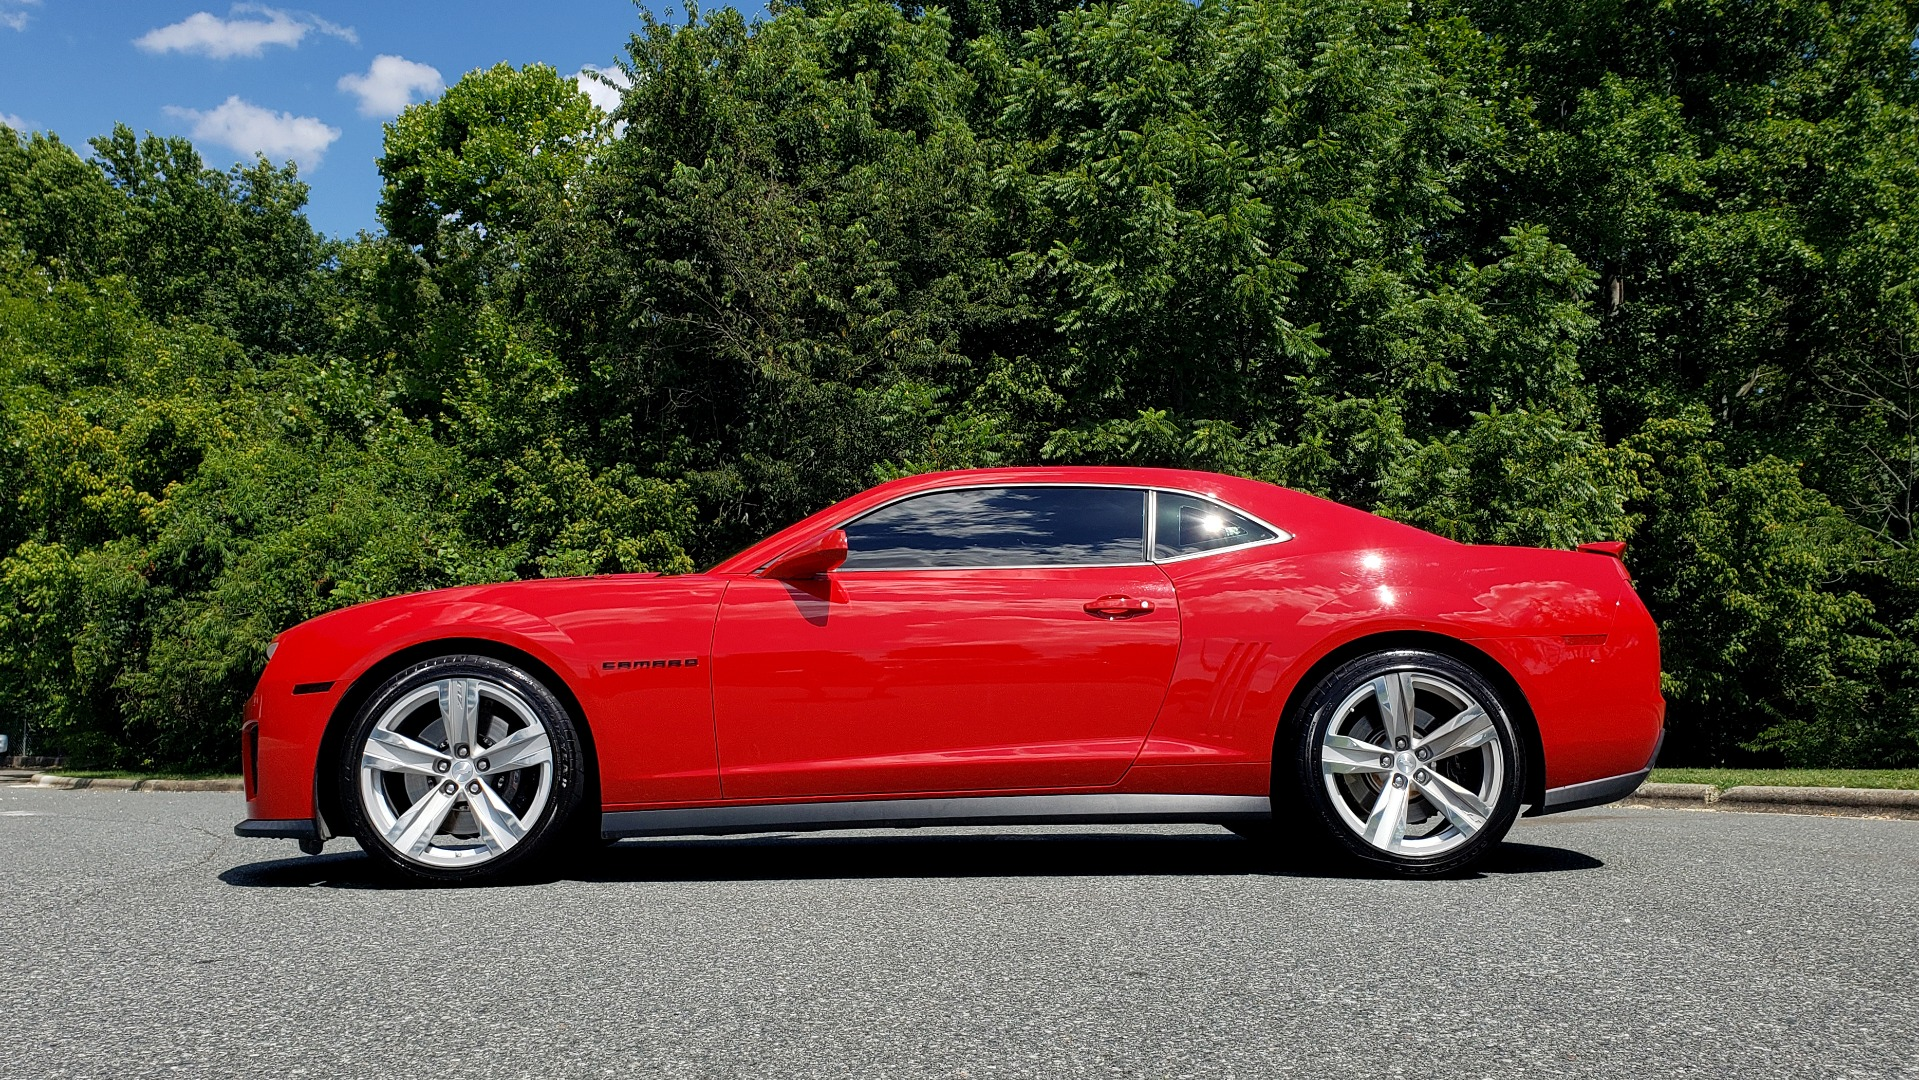 Used 2013 Chevrolet CAMARO ZL1 580HP / AUTO / NAV / BOSTON ACOUSTIC SND / REARVIEW for sale $40,995 at Formula Imports in Charlotte NC 28227 3